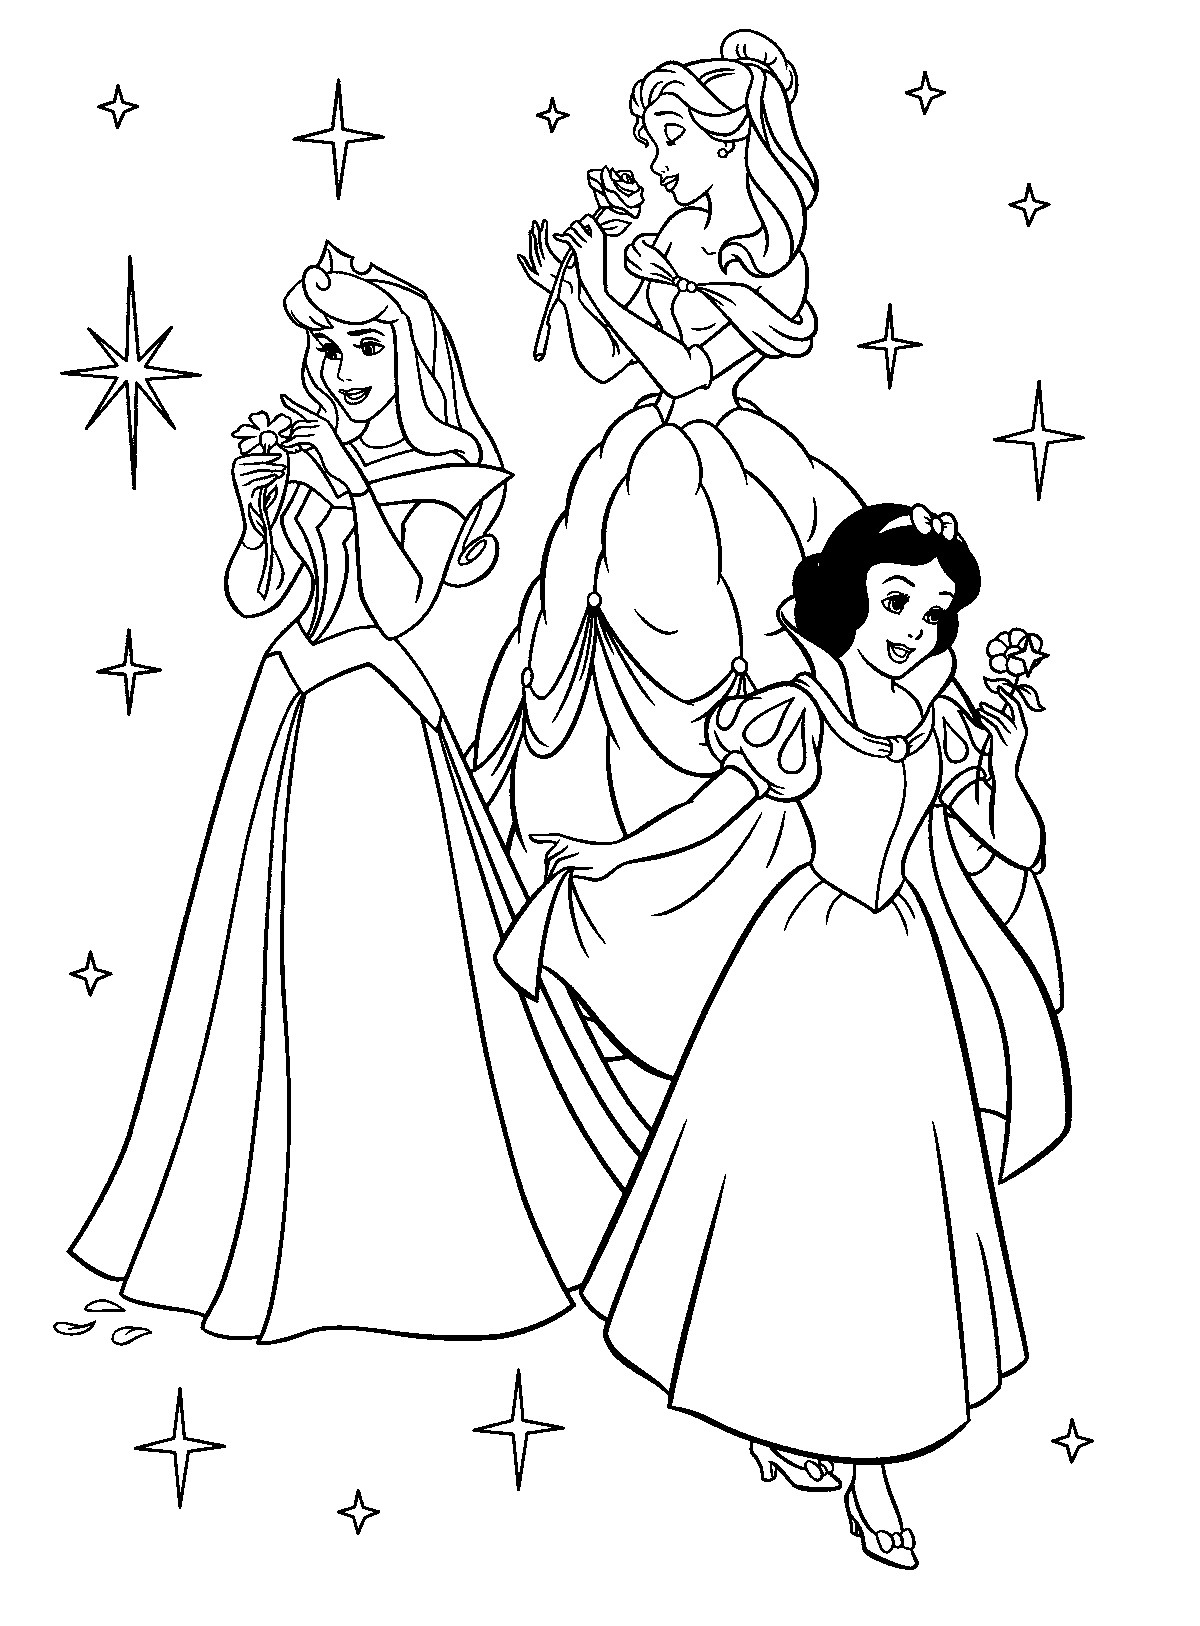 Best ideas about Coloring Pages For Girls Mouted Princess . Save or Pin Princess Coloring Pages Best Coloring Pages For Kids Now.